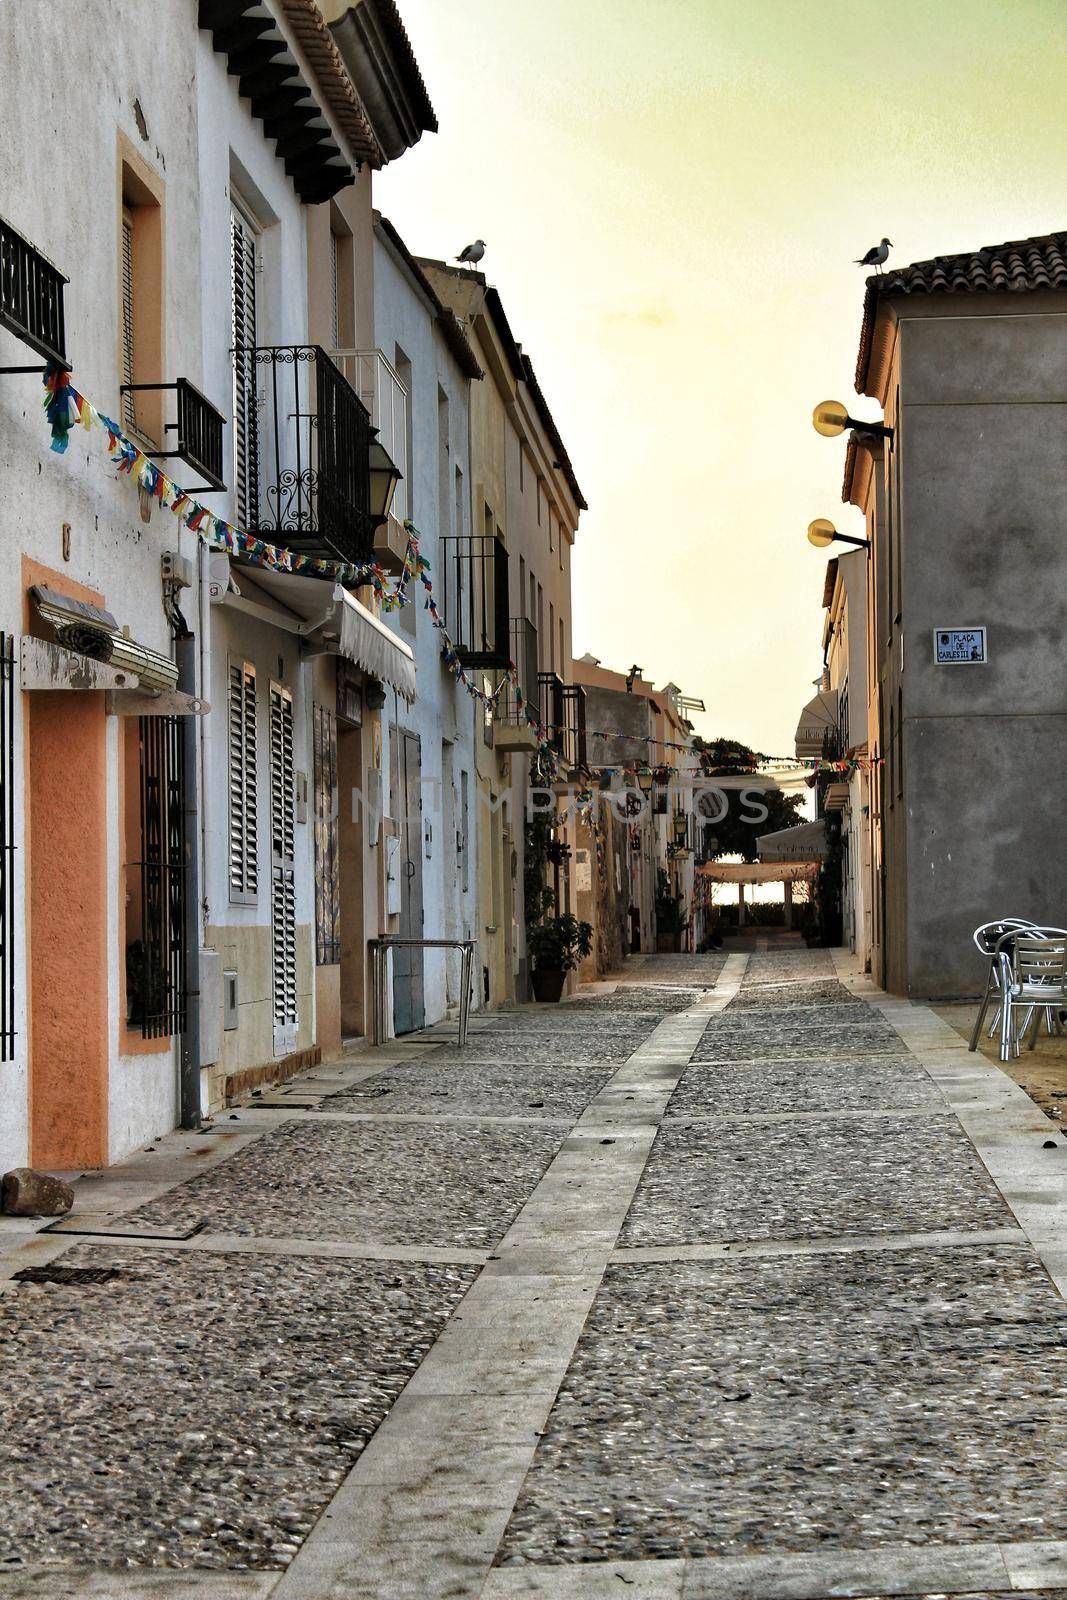 Tabarca Island, Alicante, Spain- July 15, 2018: Streets of Tabarca Island engalanated for the Virgen del Carmen festivities in summer